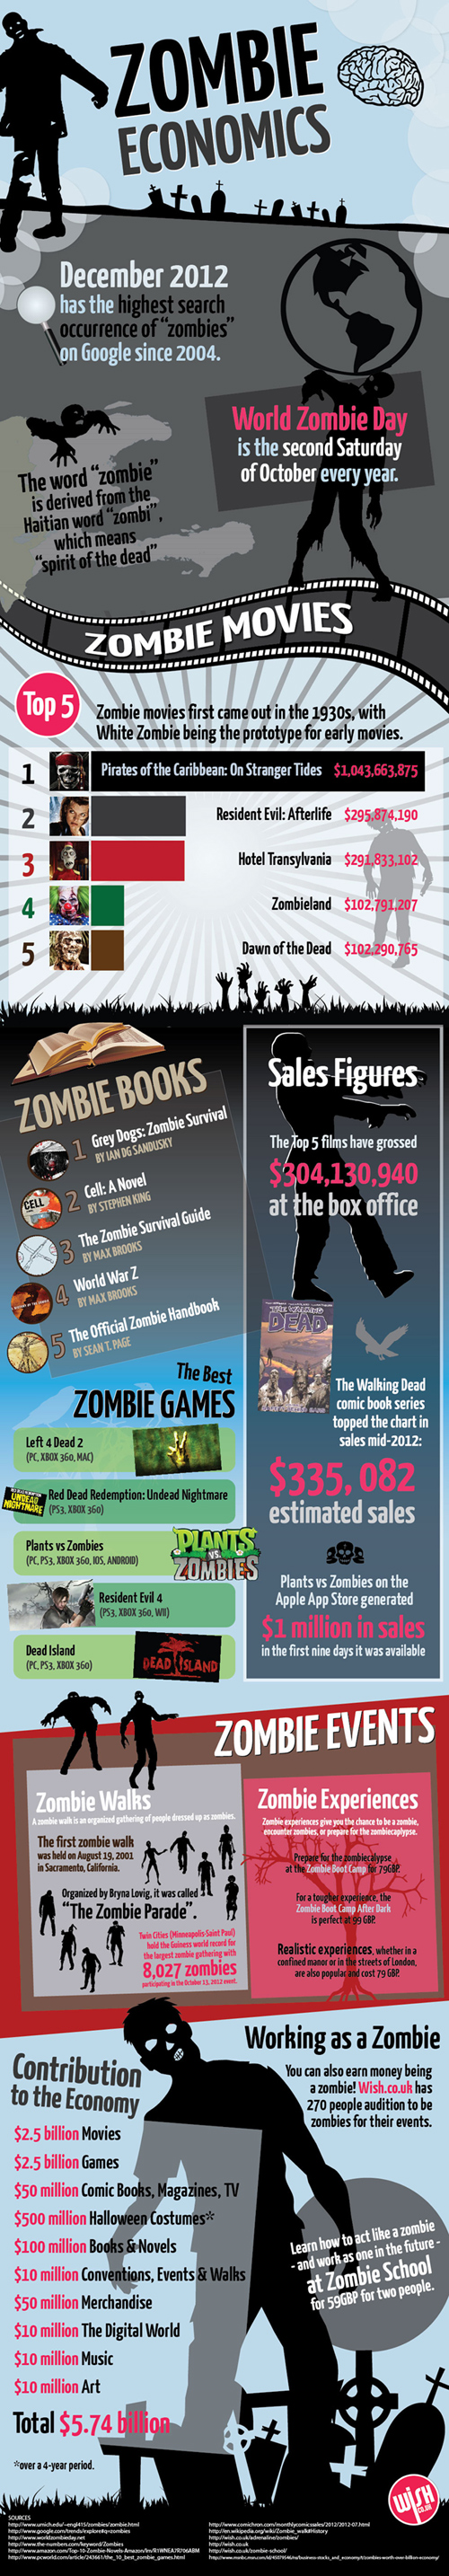 Zombie money infographic